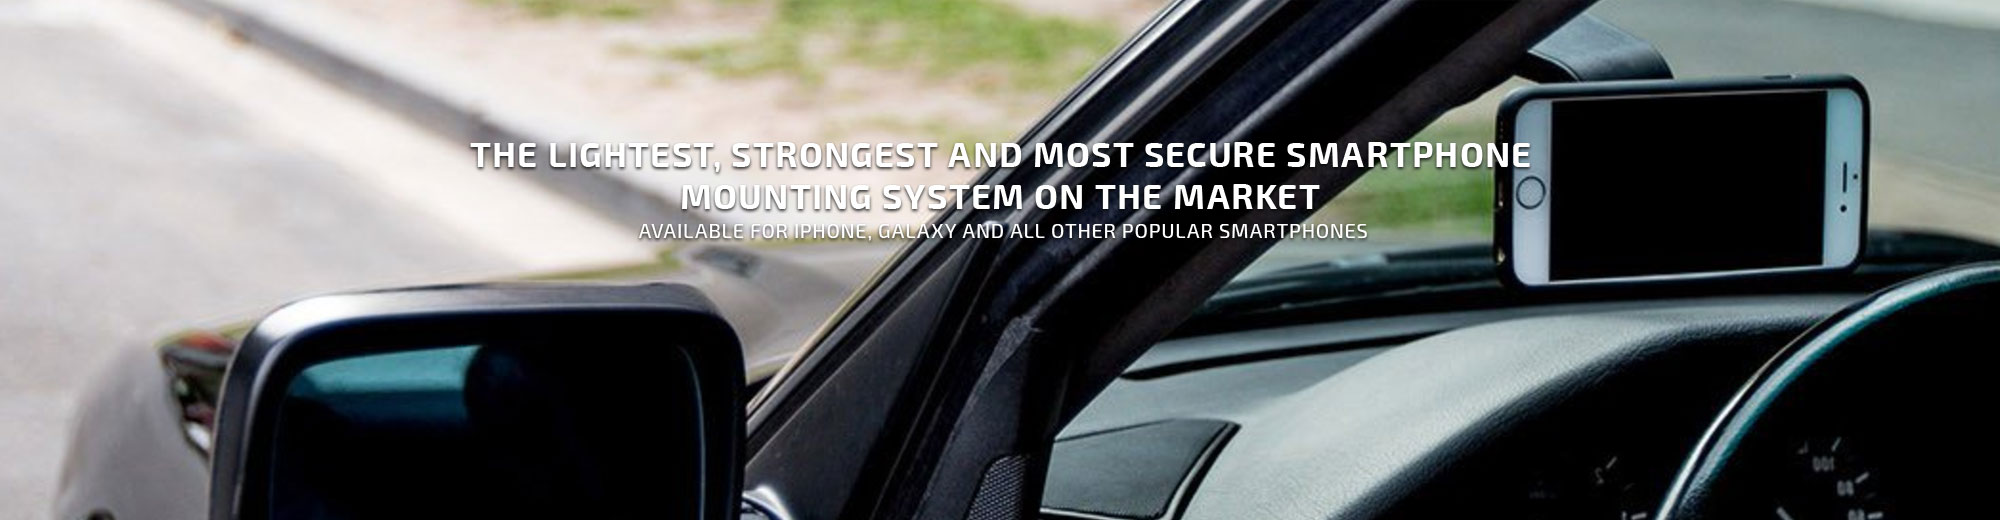 The Lightest, Strongest and Most Secure Smartphone Mounting System on the Market